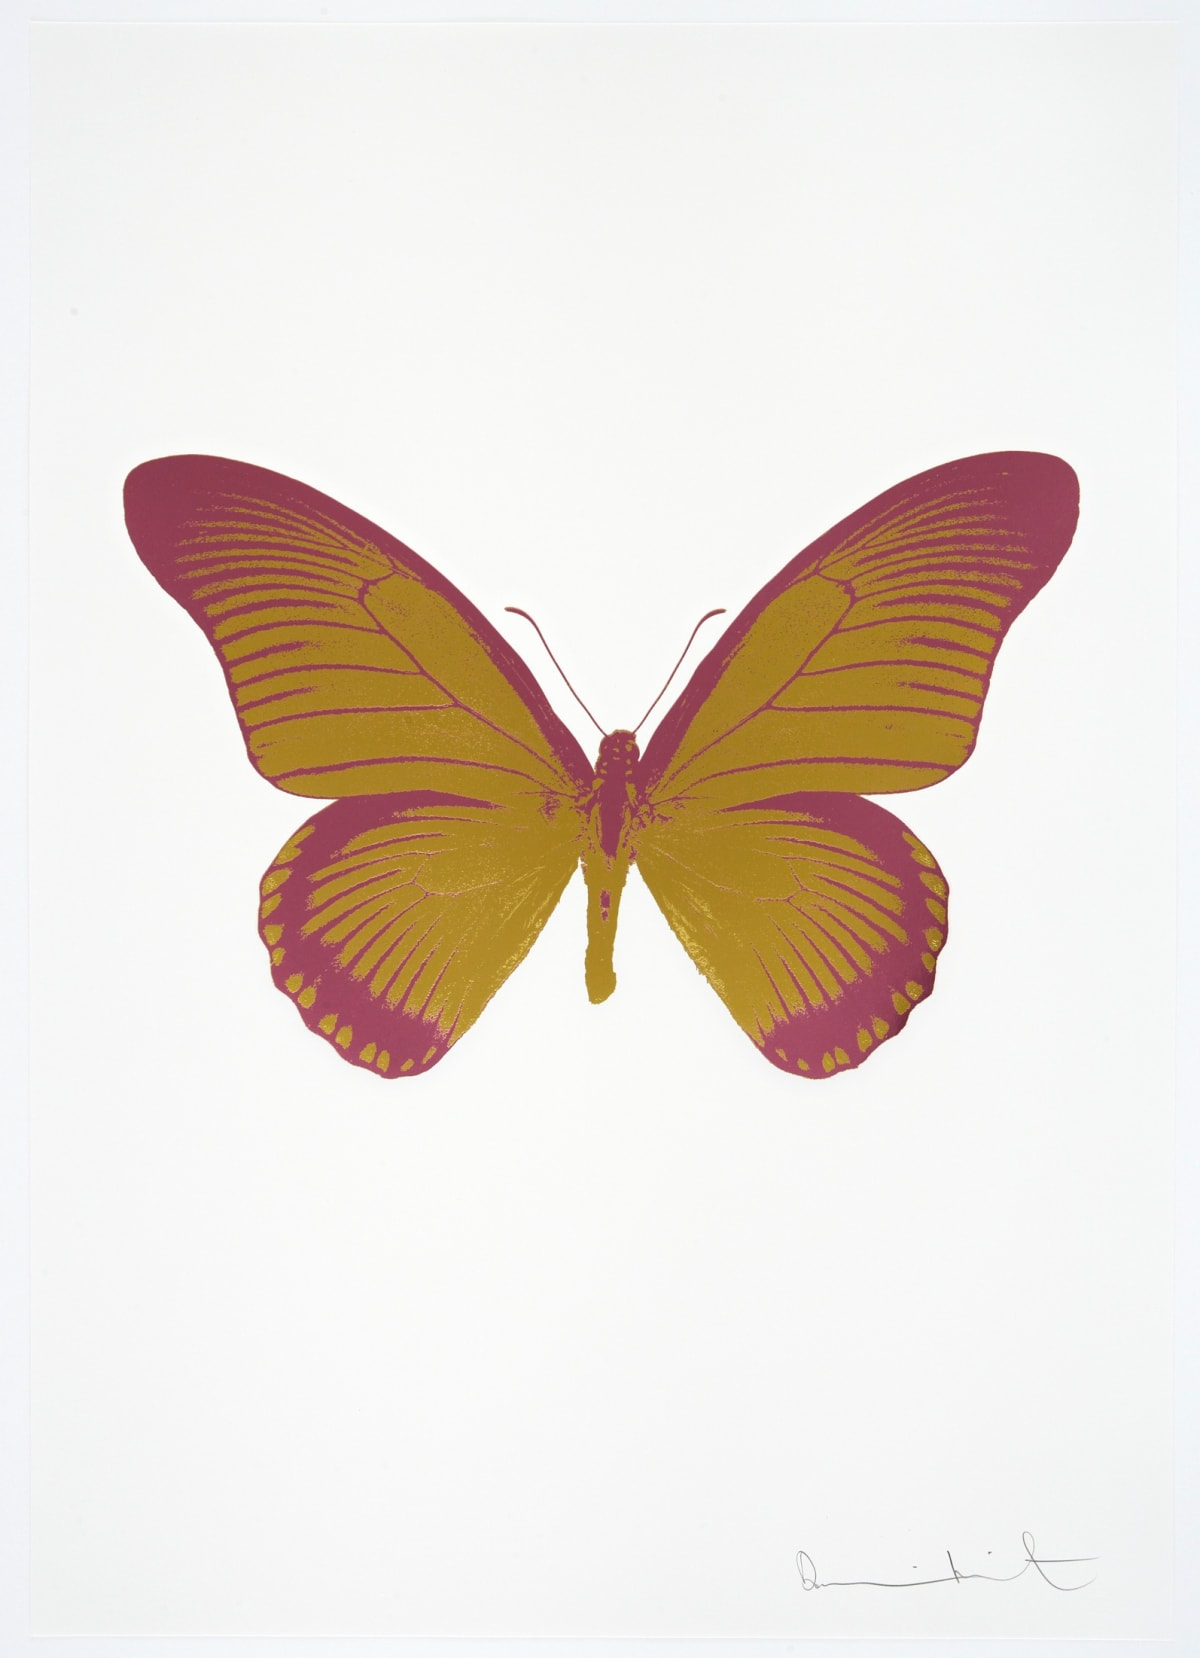 Damien Hirst The Souls IV - Oriental Gold/Loganberry Pink Damien Hirst butterfly foil print for sale Damien Hirst print for sale , 2010 2 colour foil block on 300gsm Arches 88 archival paper. Signed and numbered. Published by Paul Stolper and Other Criteria 72 x 51cm OC7994 / 1418-17 Edition of 15